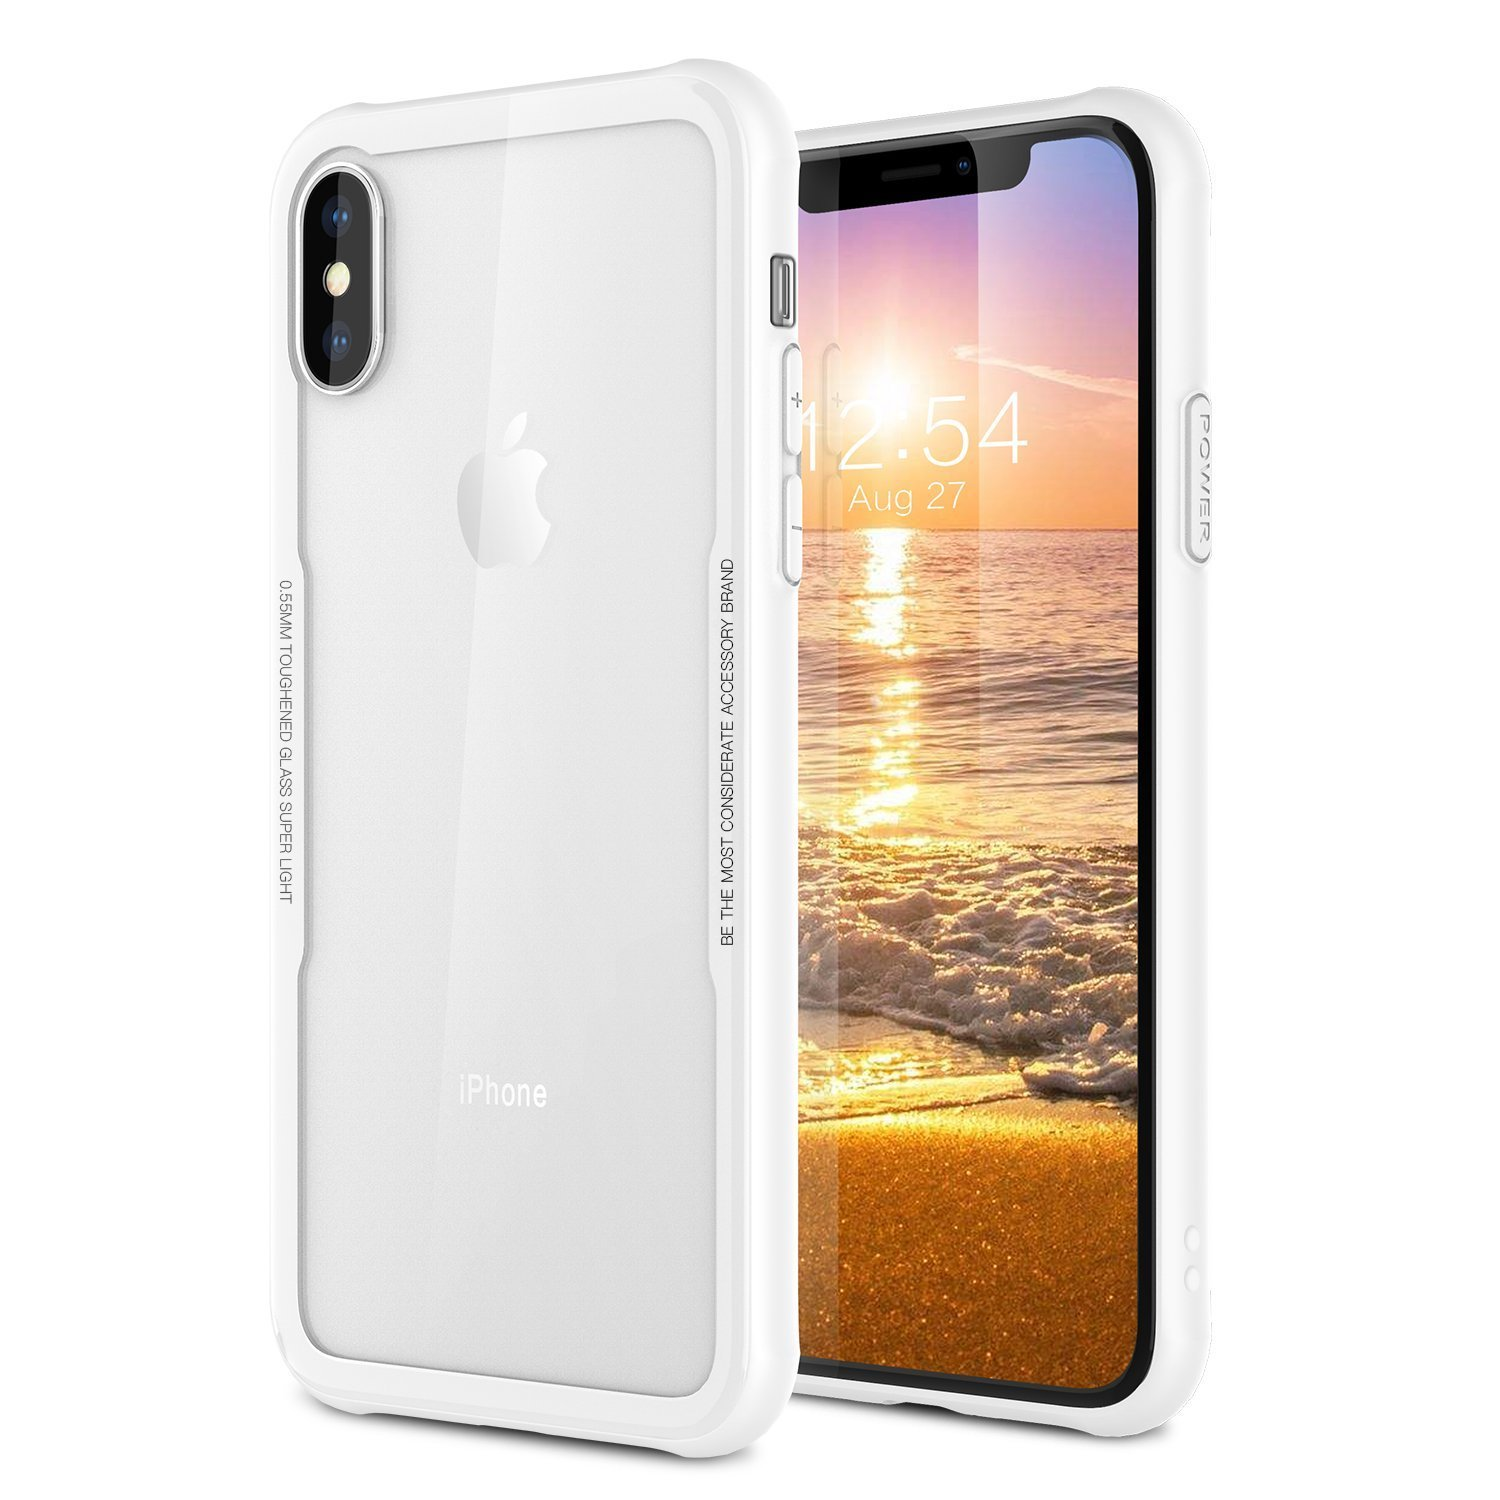 iPhone X Tempered Glass Phone Case,Soft Grip Matte Finish TPU +0.55mm Tempered Glass Hard Back Panel Hybrid Ultra-Thin [ Slim Fit ] Protect Cover Shock Absorption Back-Transparent for iPhone 10 / X